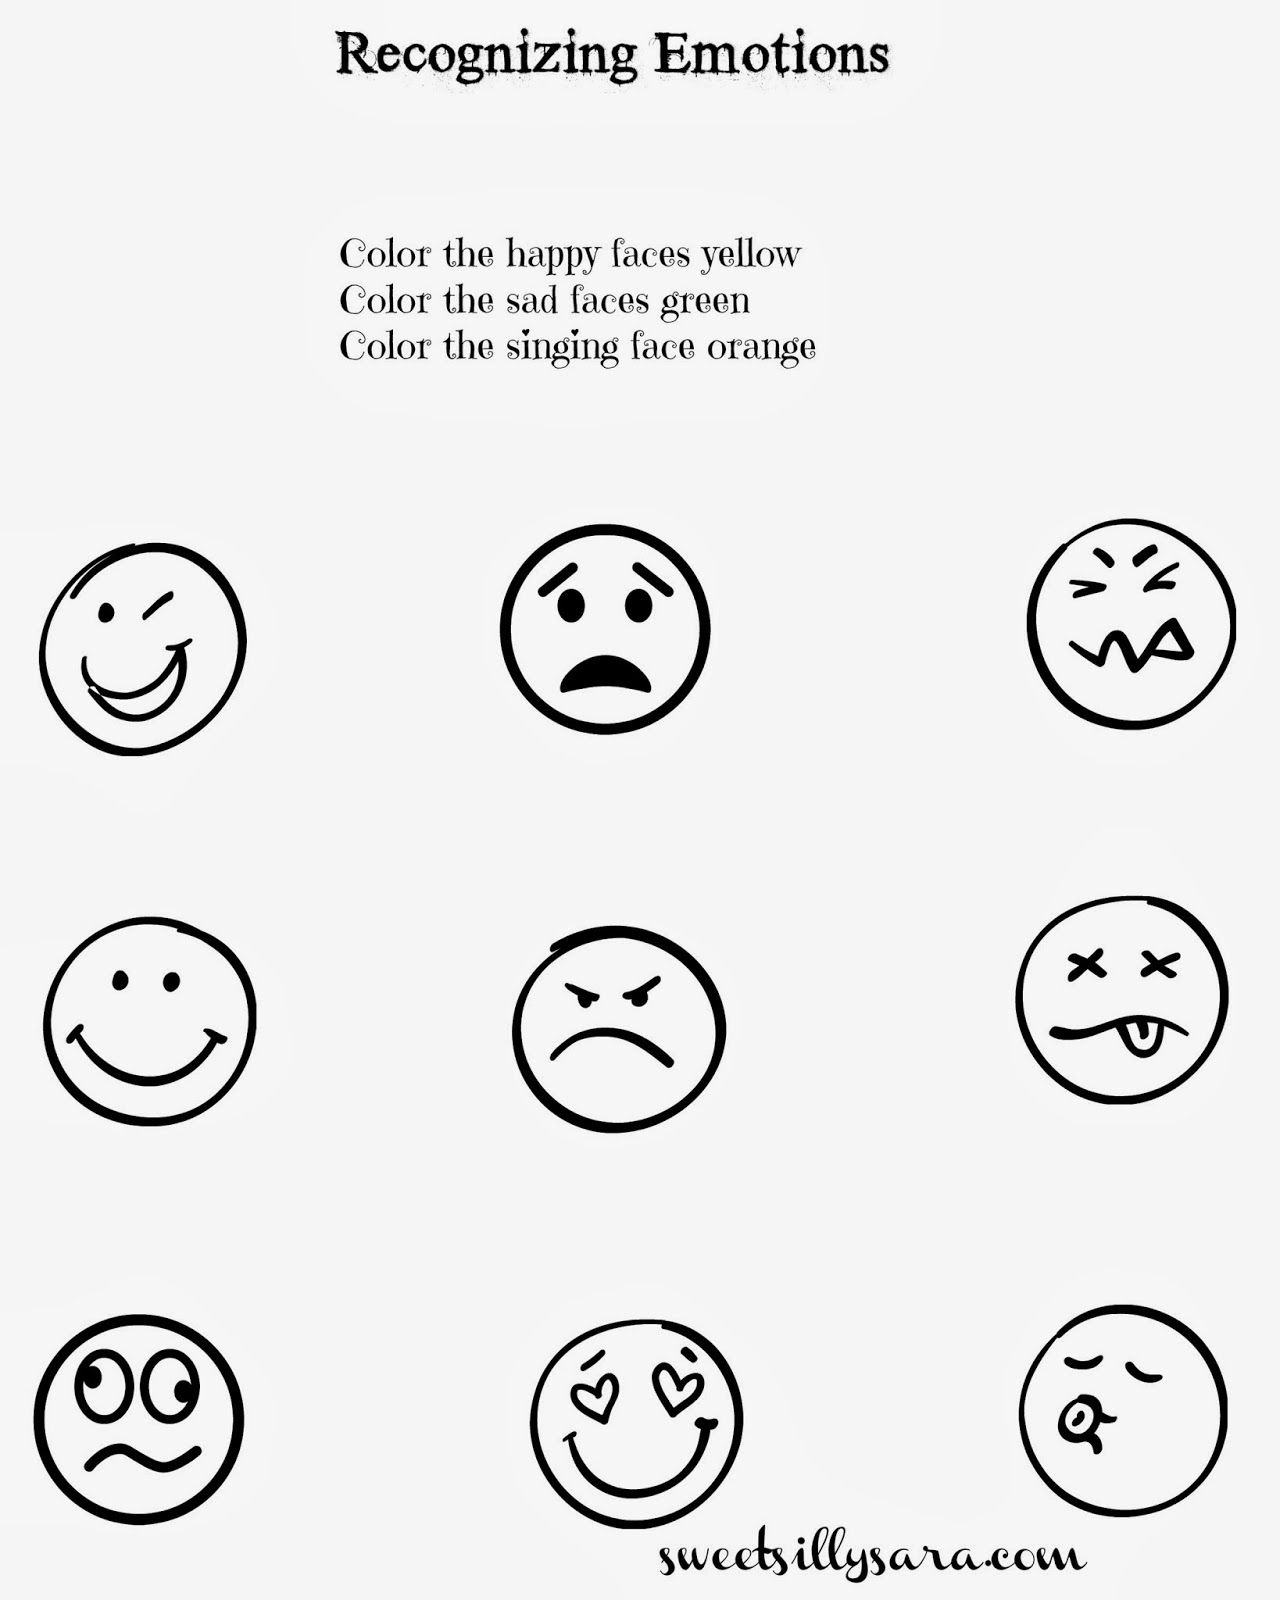 Sweet Silly Sara Recognizing Emotions Worksheet – Feelings and Emotions Worksheets